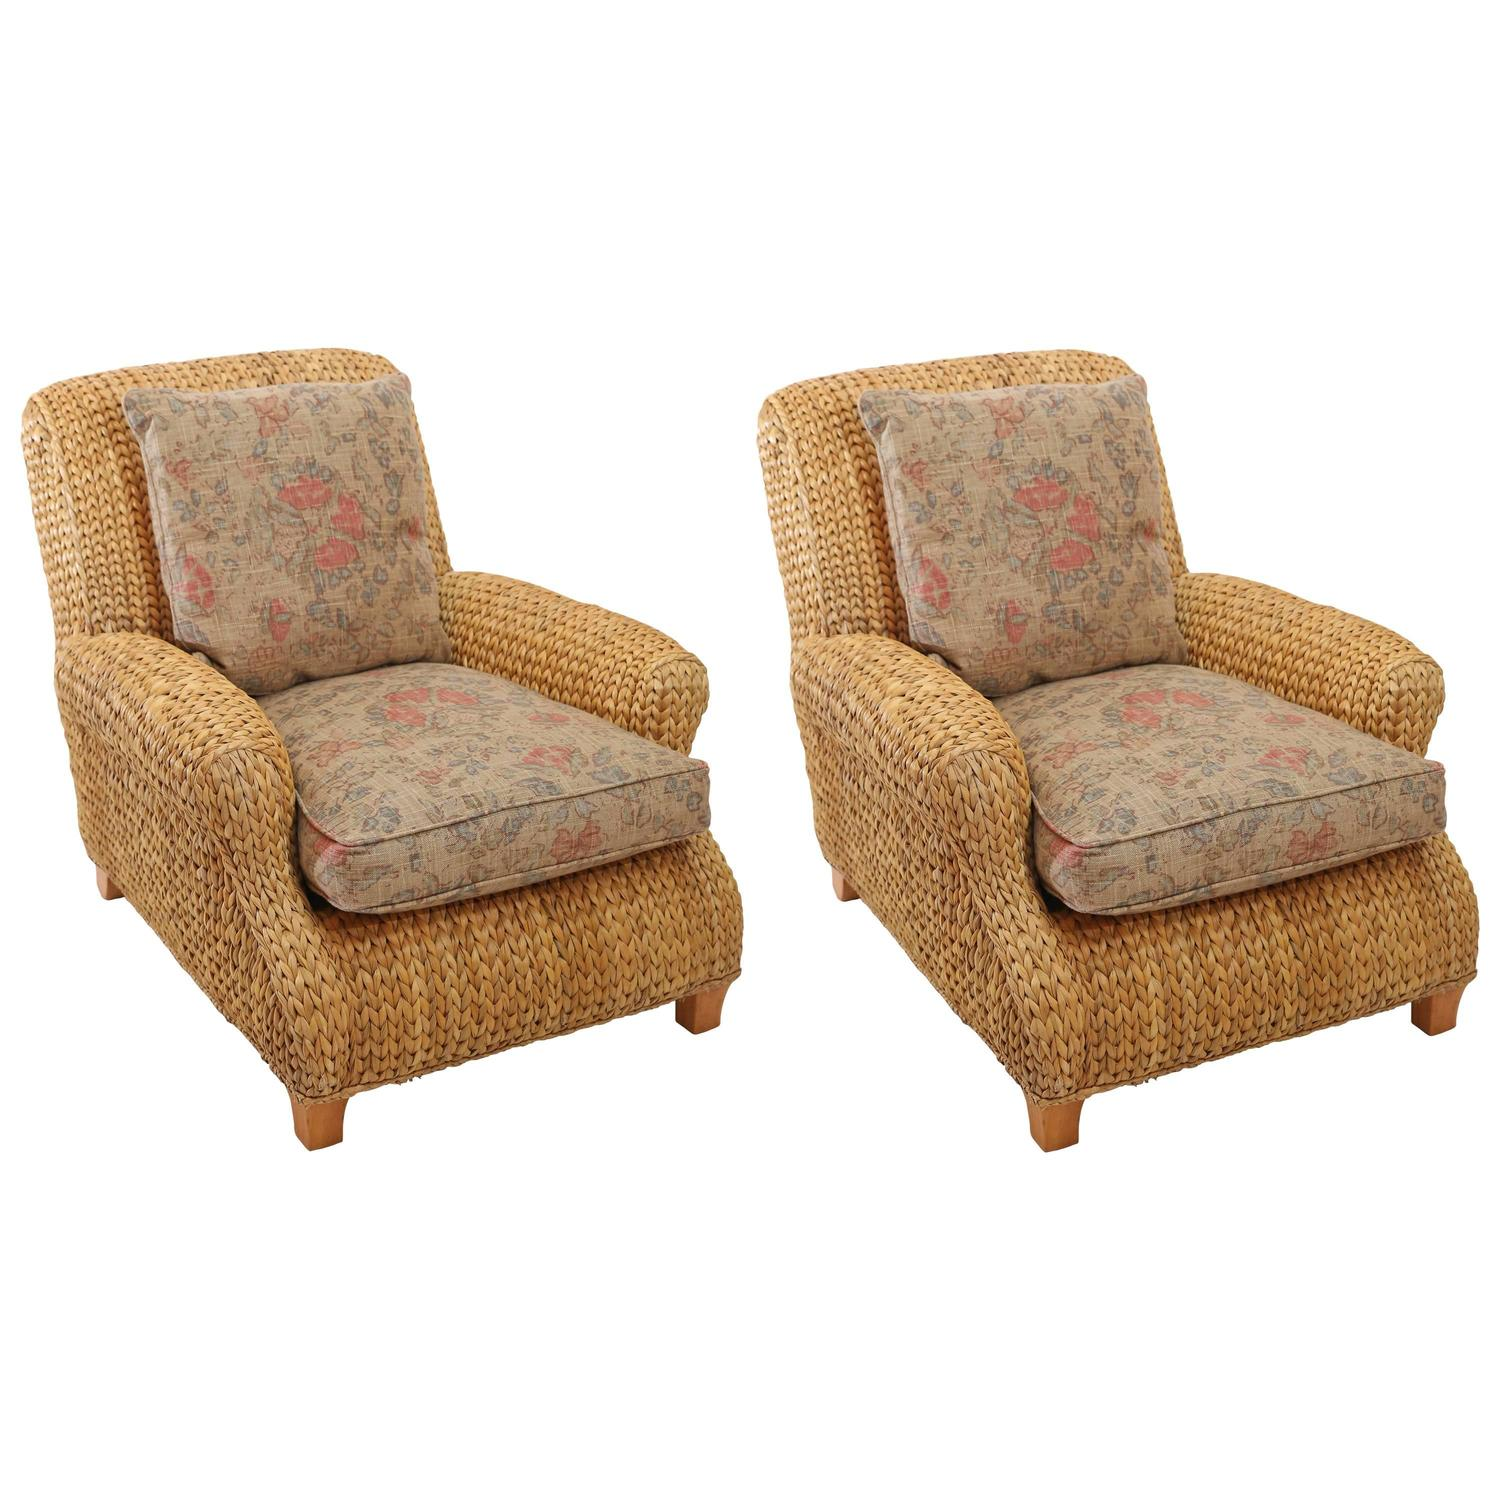 sea grass chairs power lift medicare pair of ralph lauren seagrass club at 1stdibs